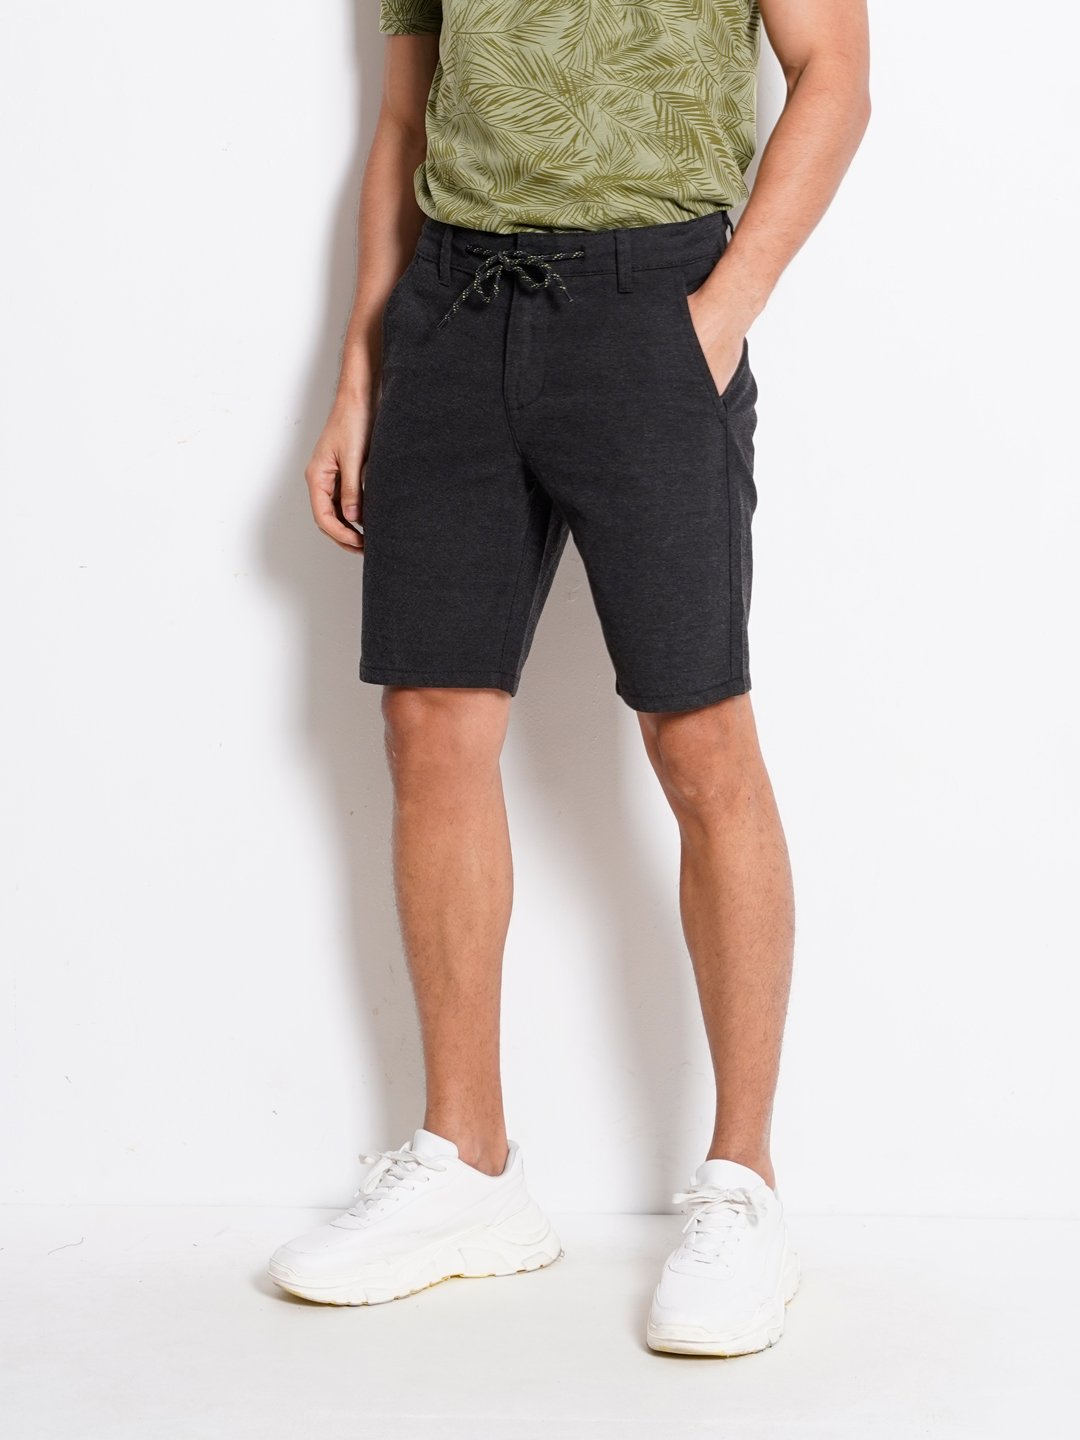 Men Short Pants With Drawstring - Black - KQF20H2576